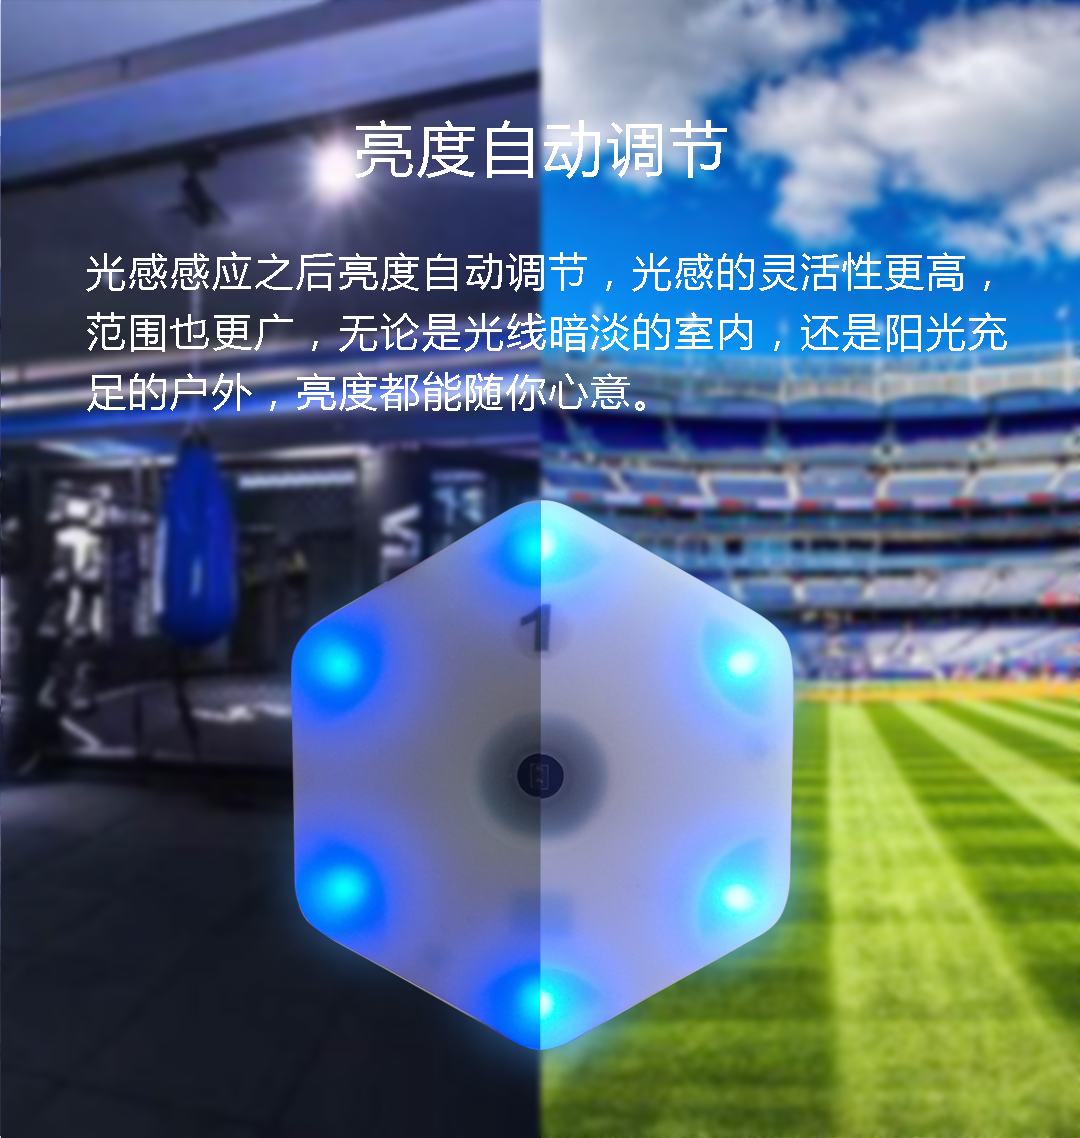 【queling】reaction training light lamp speed agility  response equipment basketball boxing fitlight blazepod siboasi 2.0-1